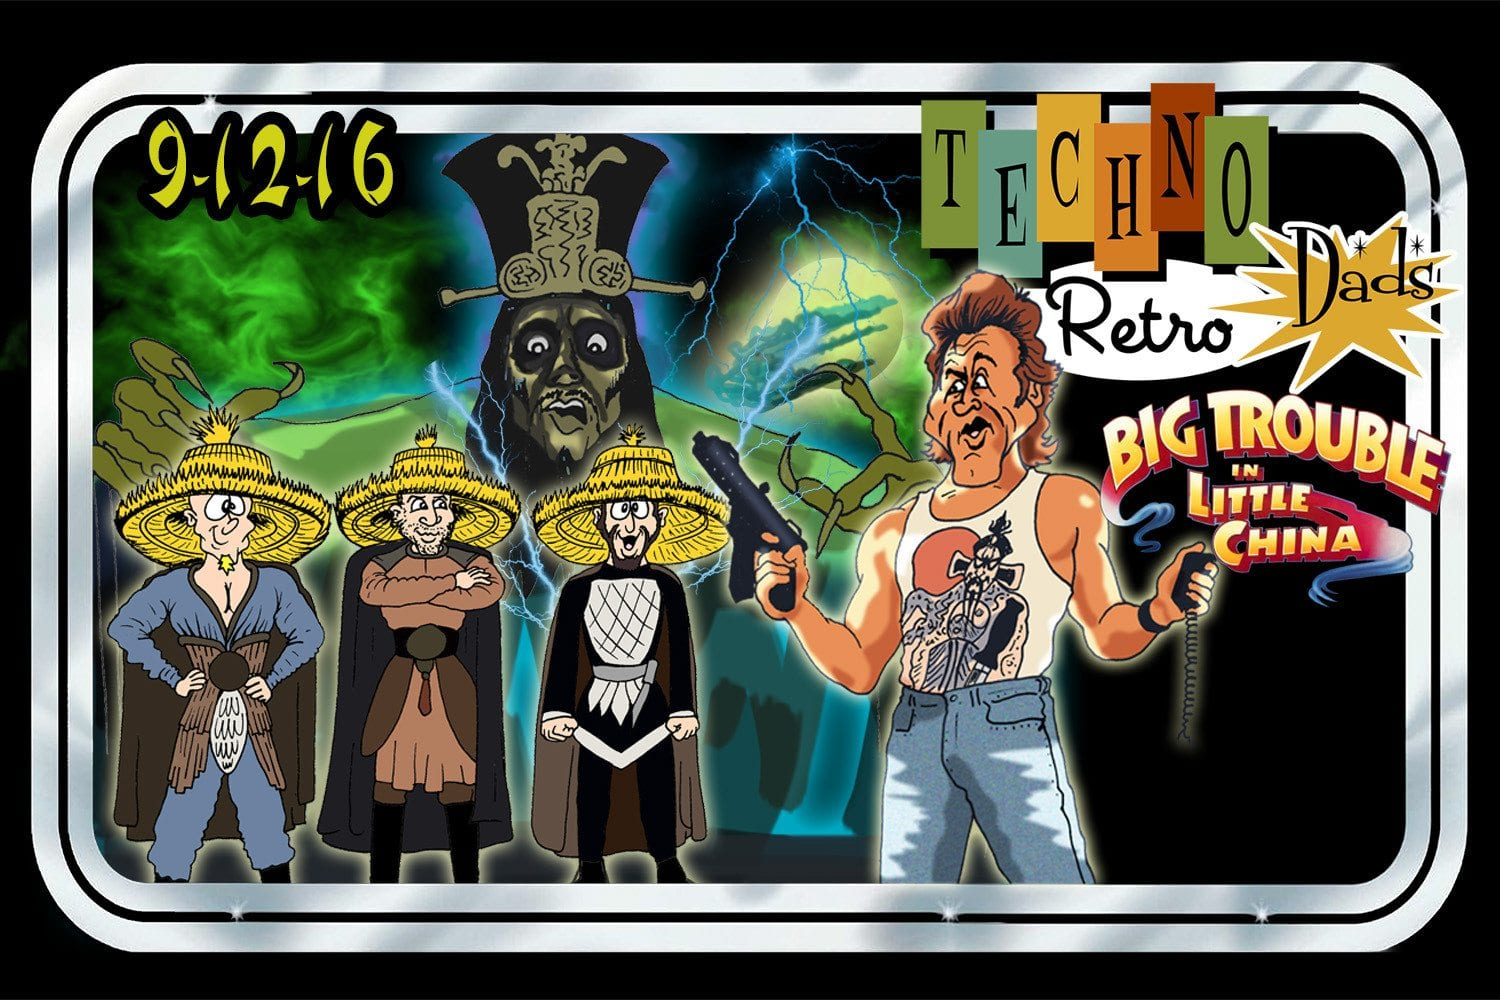 TechnoRetro Dads: Little China Is in Big Trouble with Brews and Blasters' Joe Tavano in Boston